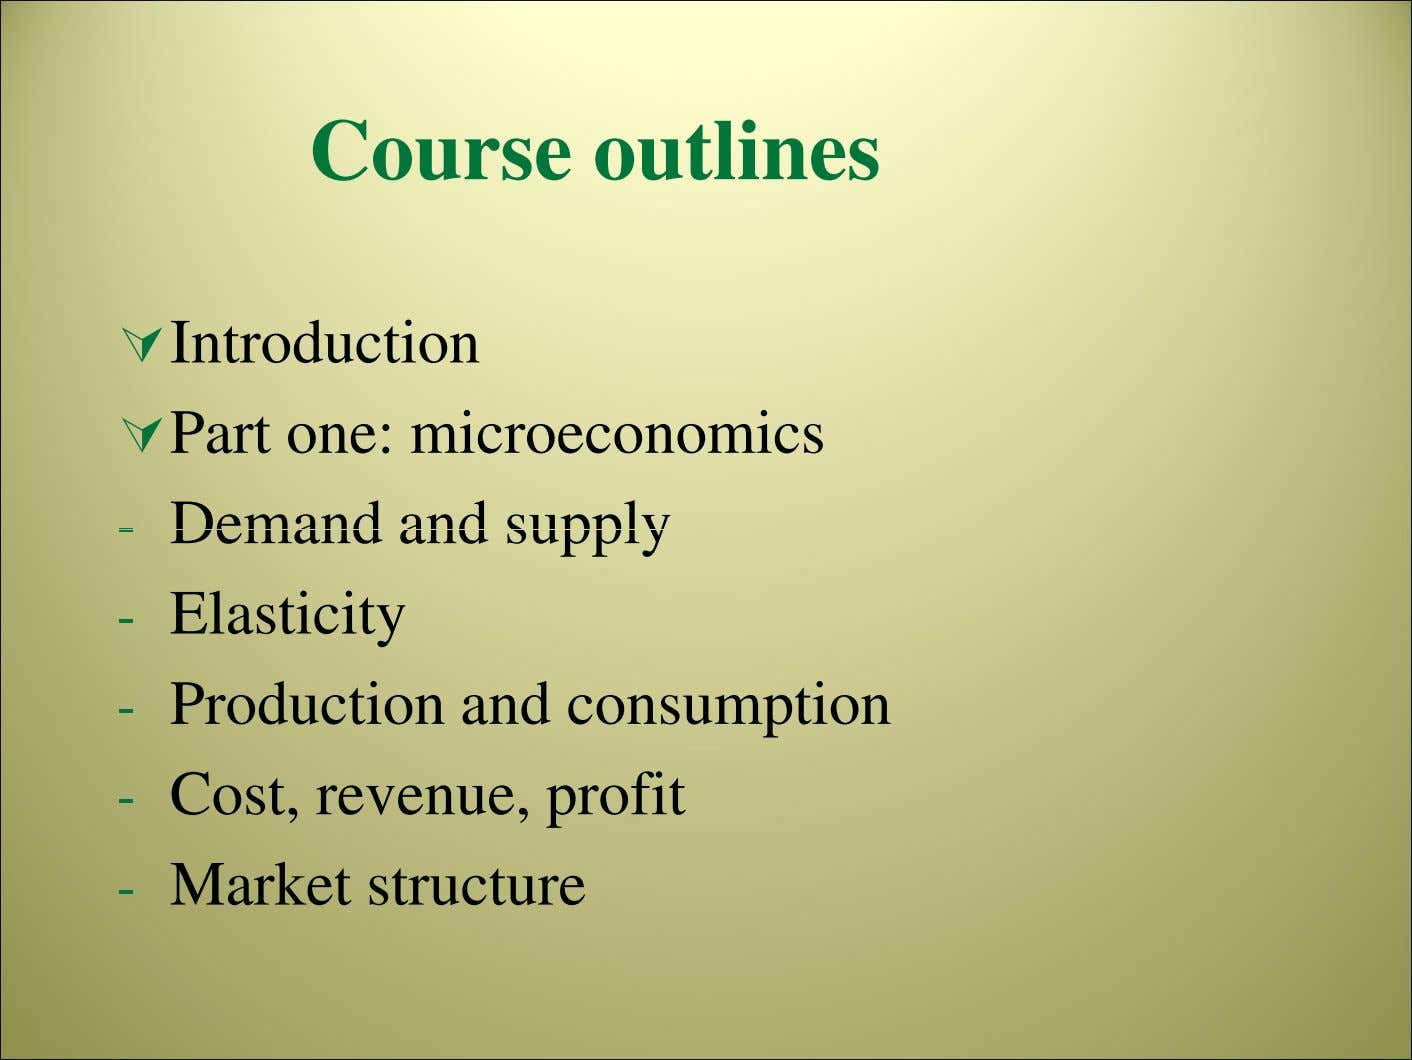 Course outlines Introduction Part one: microeconomics - Demand and supply - Elasticity - Production and